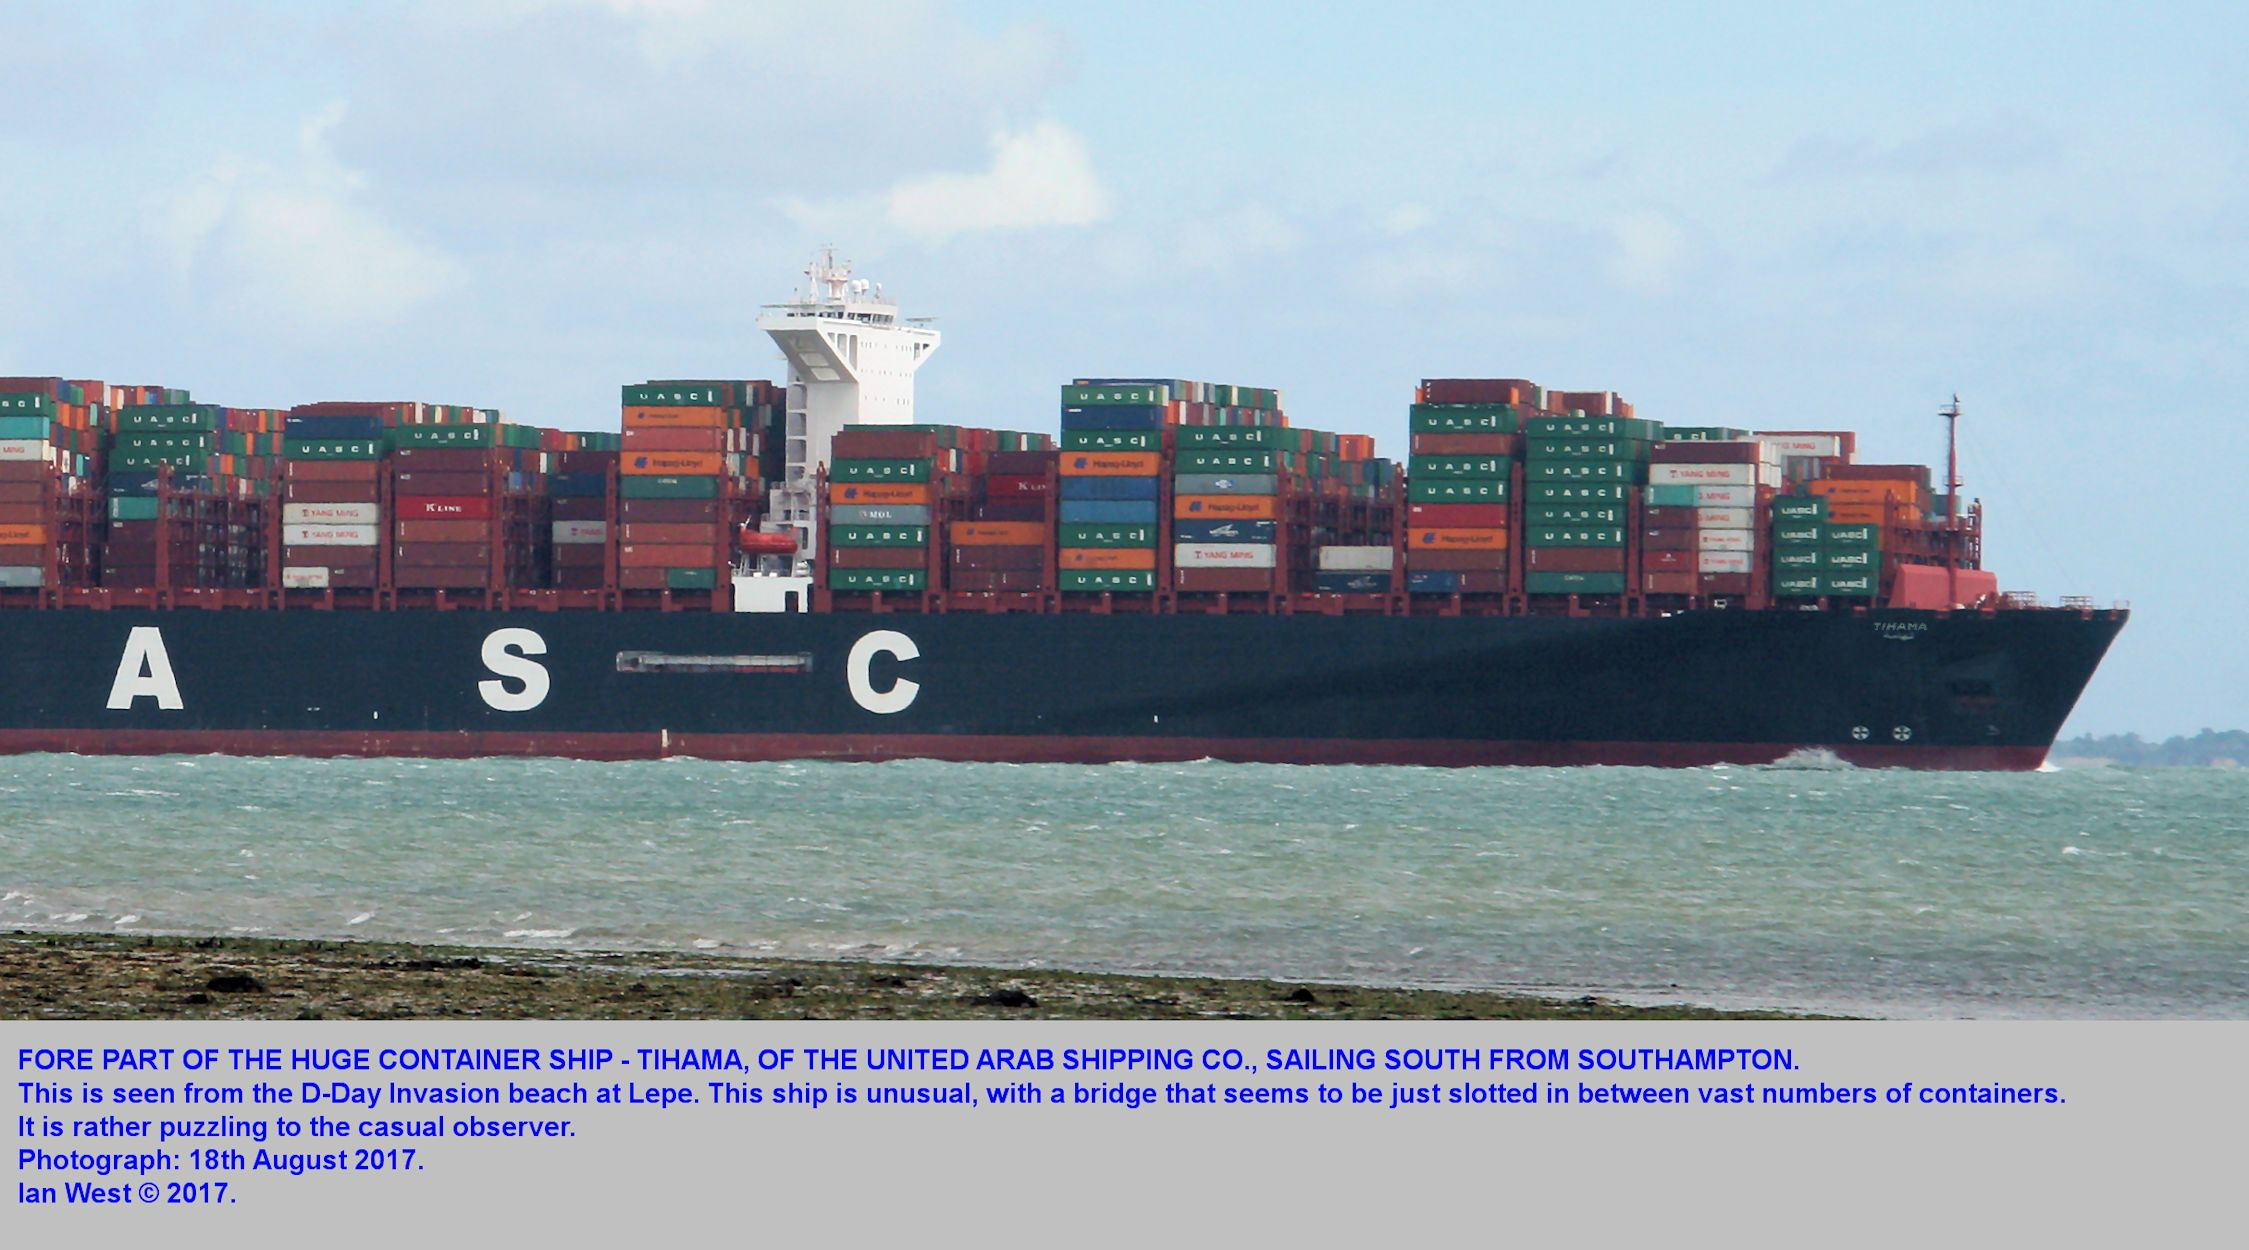 The fore part of the unusually large container ship, the Tihama, photographed from the Stansore Point, near Lepe, Hampshire, 18th August 2017